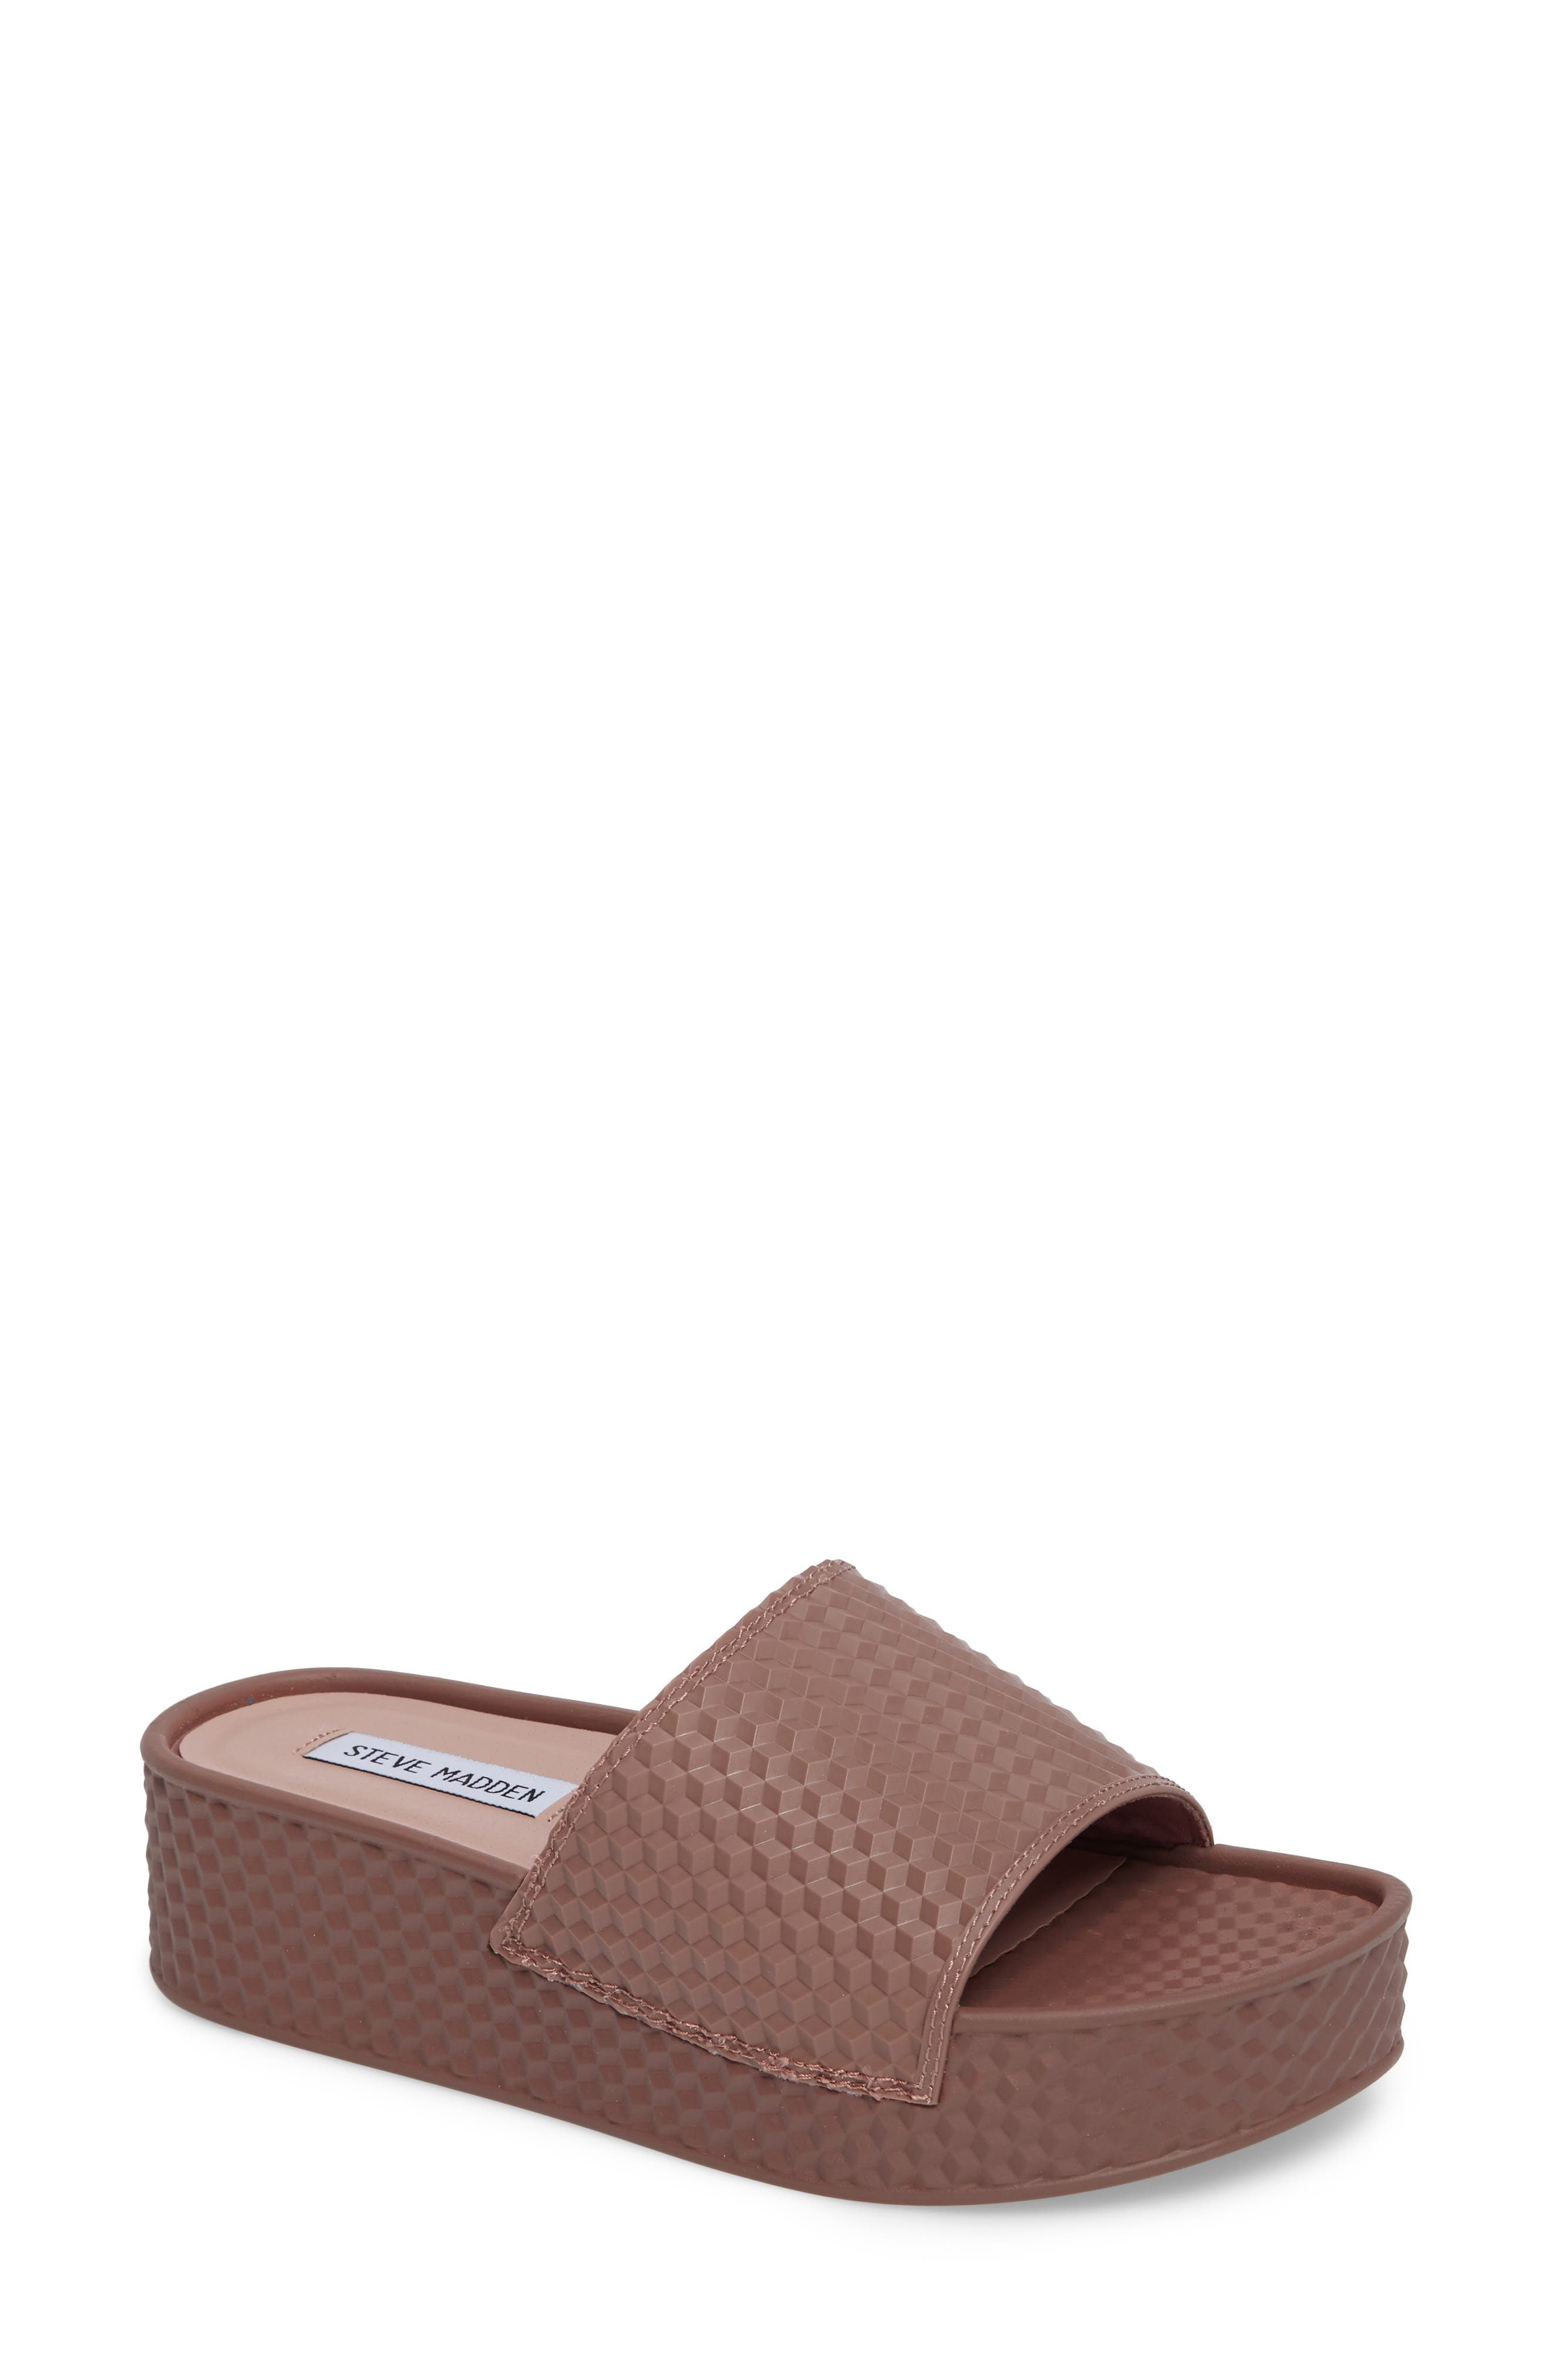 Women's Sharpie Slide Sandal